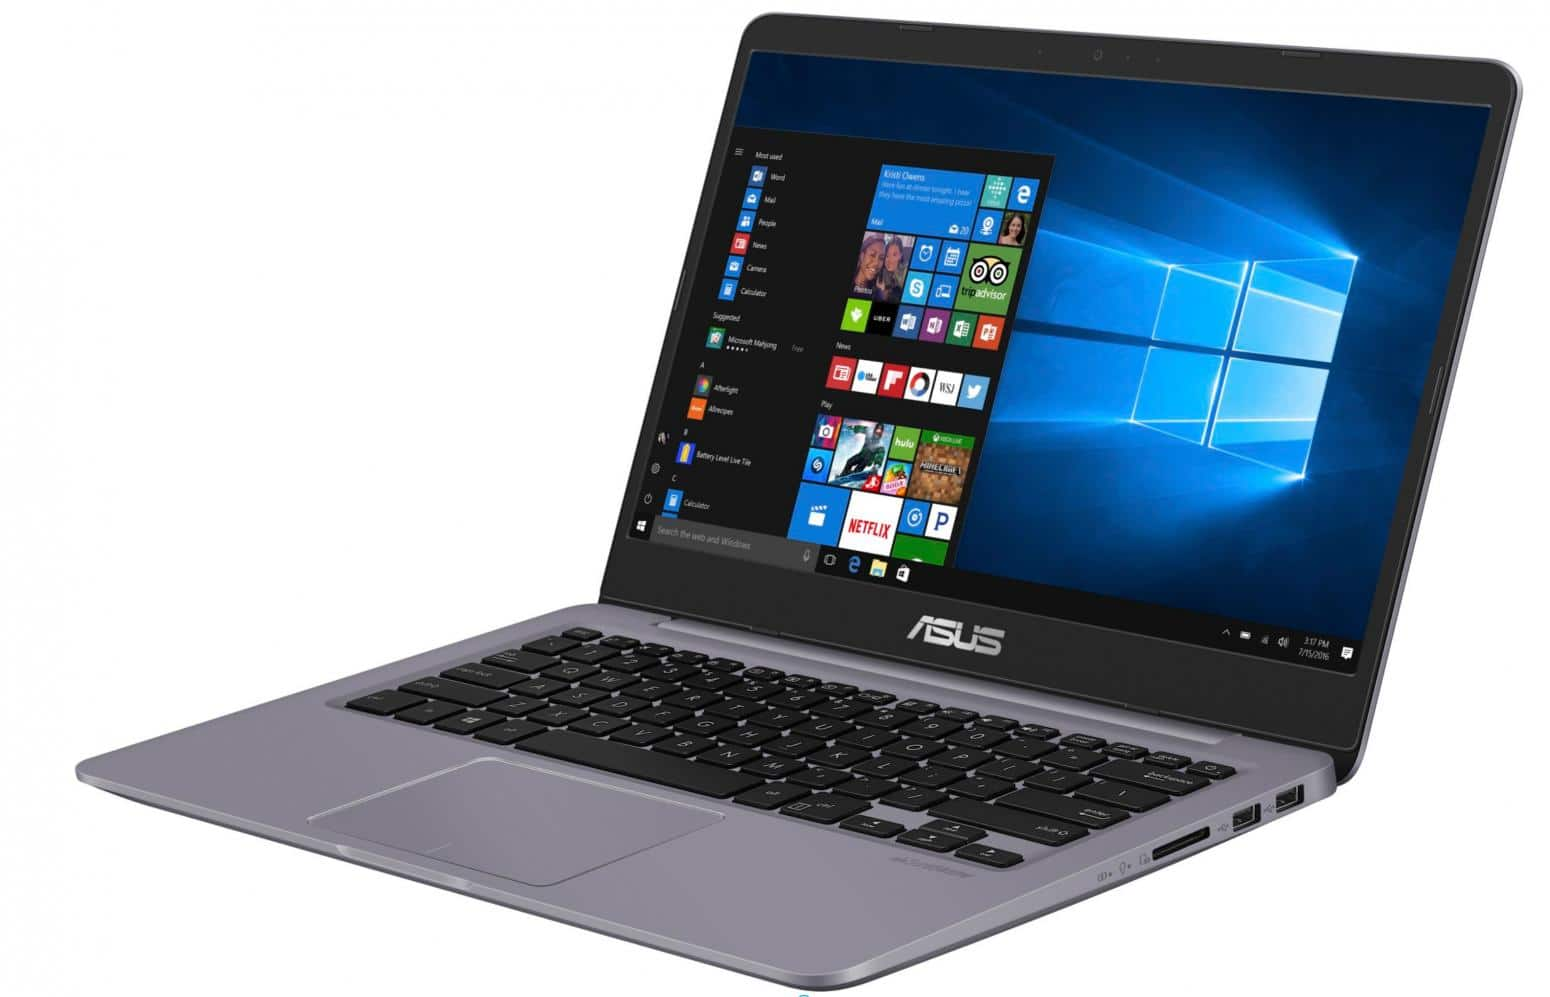 Asus VivoBook S410UA-EB032T, ultrabook 14 pouces SSD+HDD Kaby-R pack 794€